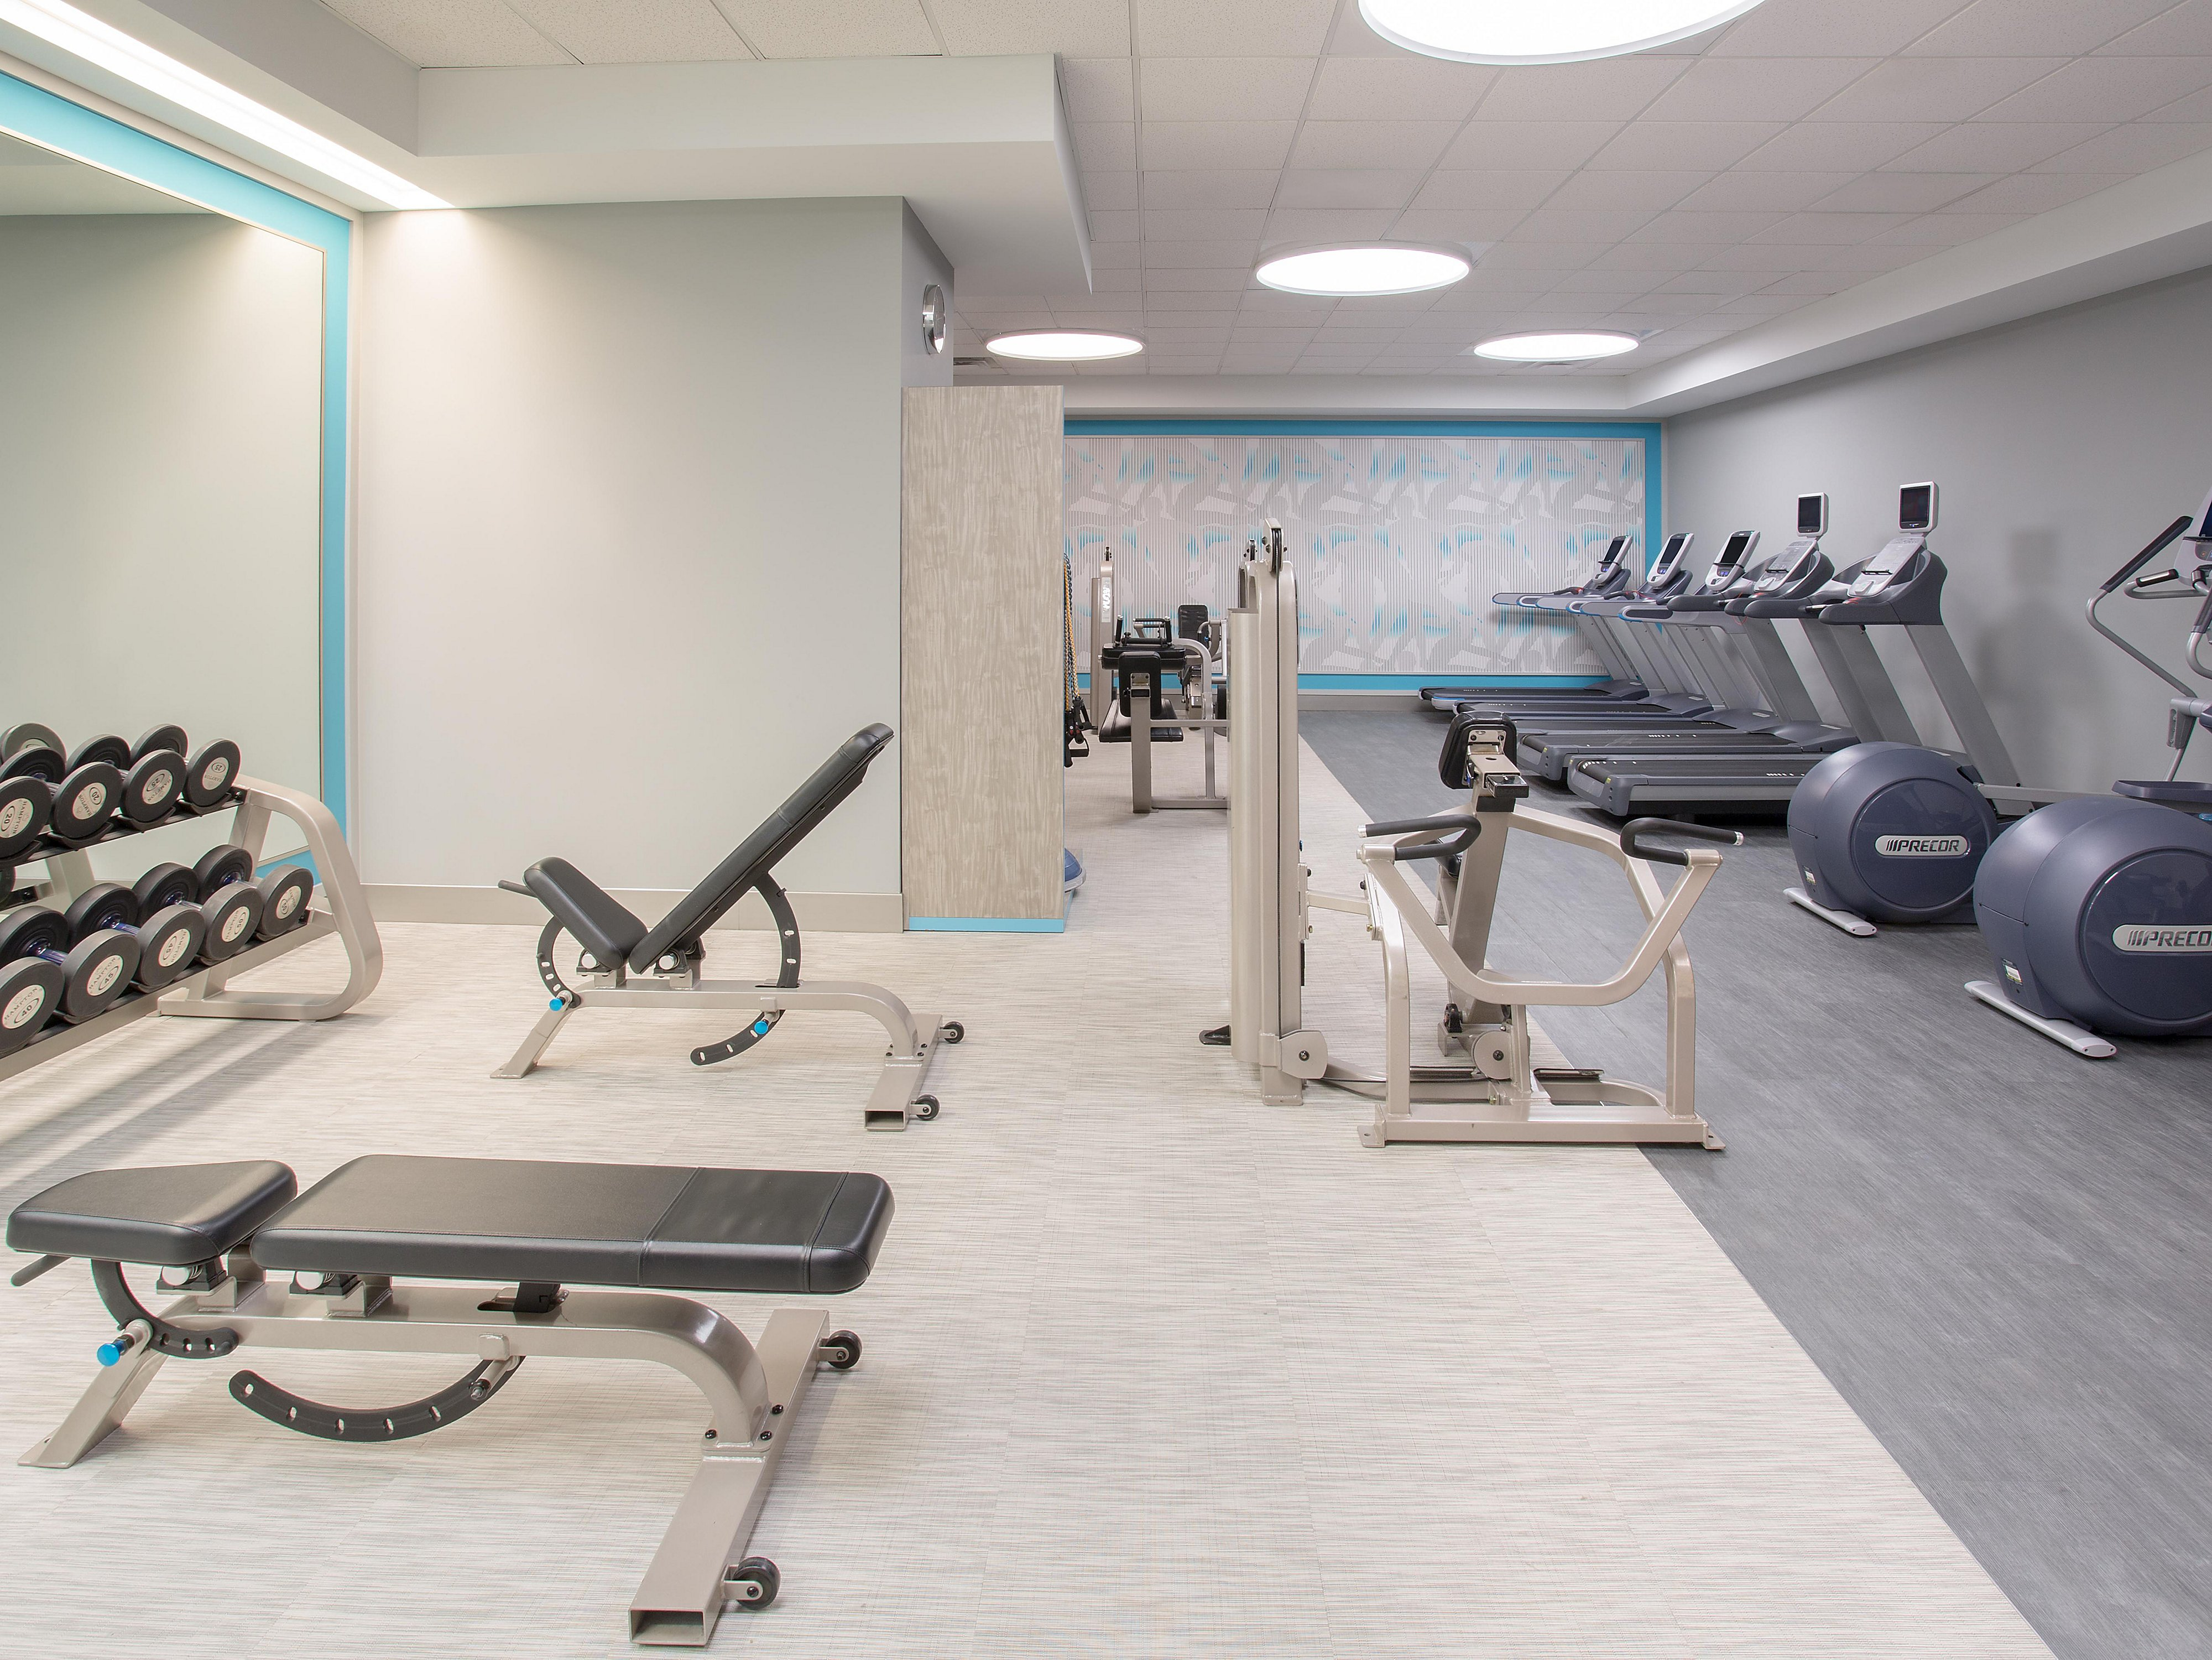 Crowne Plaza Denver Airport Convention Ctr Health and Fitness Facilities